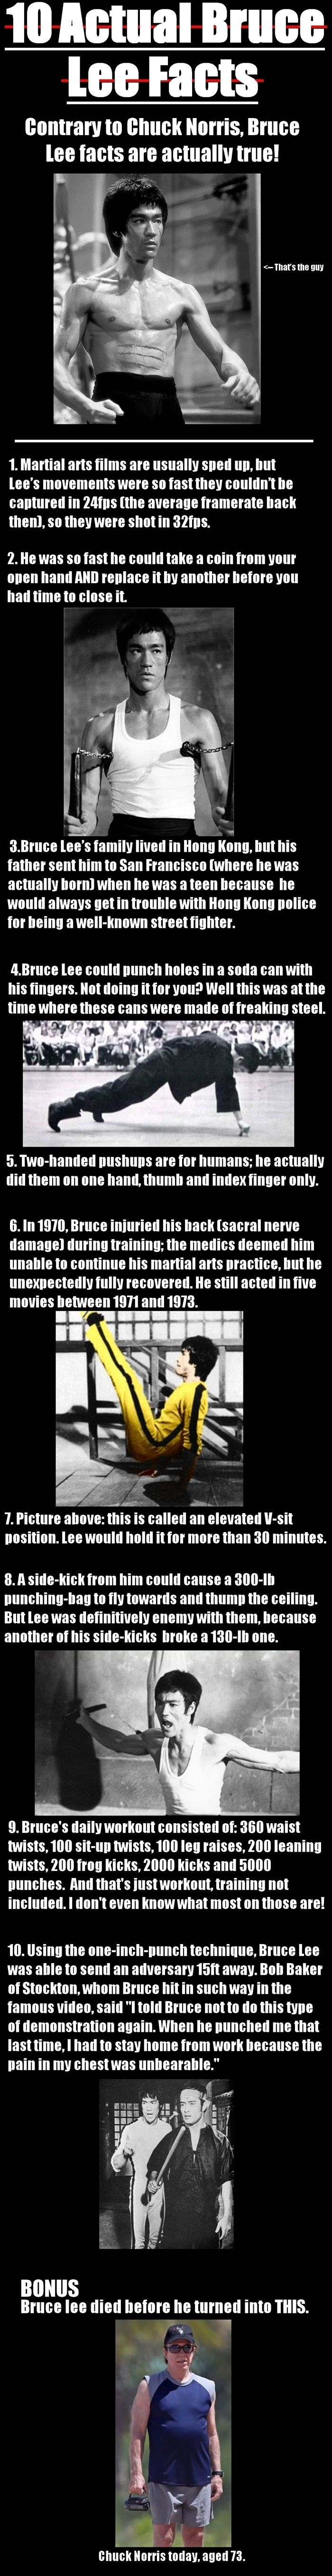 Bruce Lee facts. Be water, my friend! :: THE METAL TRIBE :: A Finnish metal musician's 1-year extreme challenge to become an #MMA fighter in Sweden: http://themetaltribe.com/pinterest | Repinned by @michaelguatieri